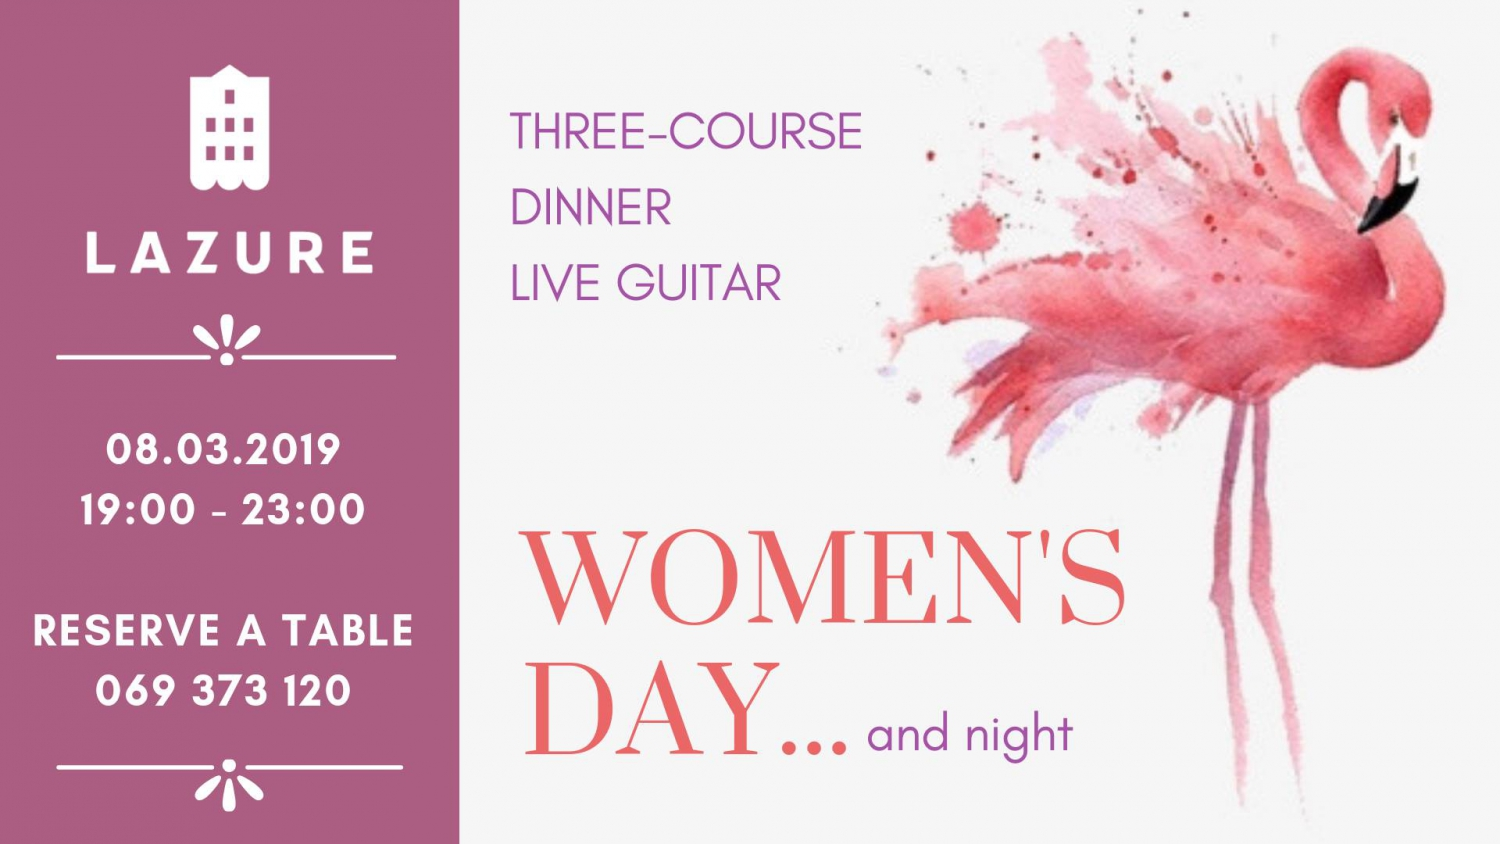 Women's Day Dinner at Lazure Hotel&Marina